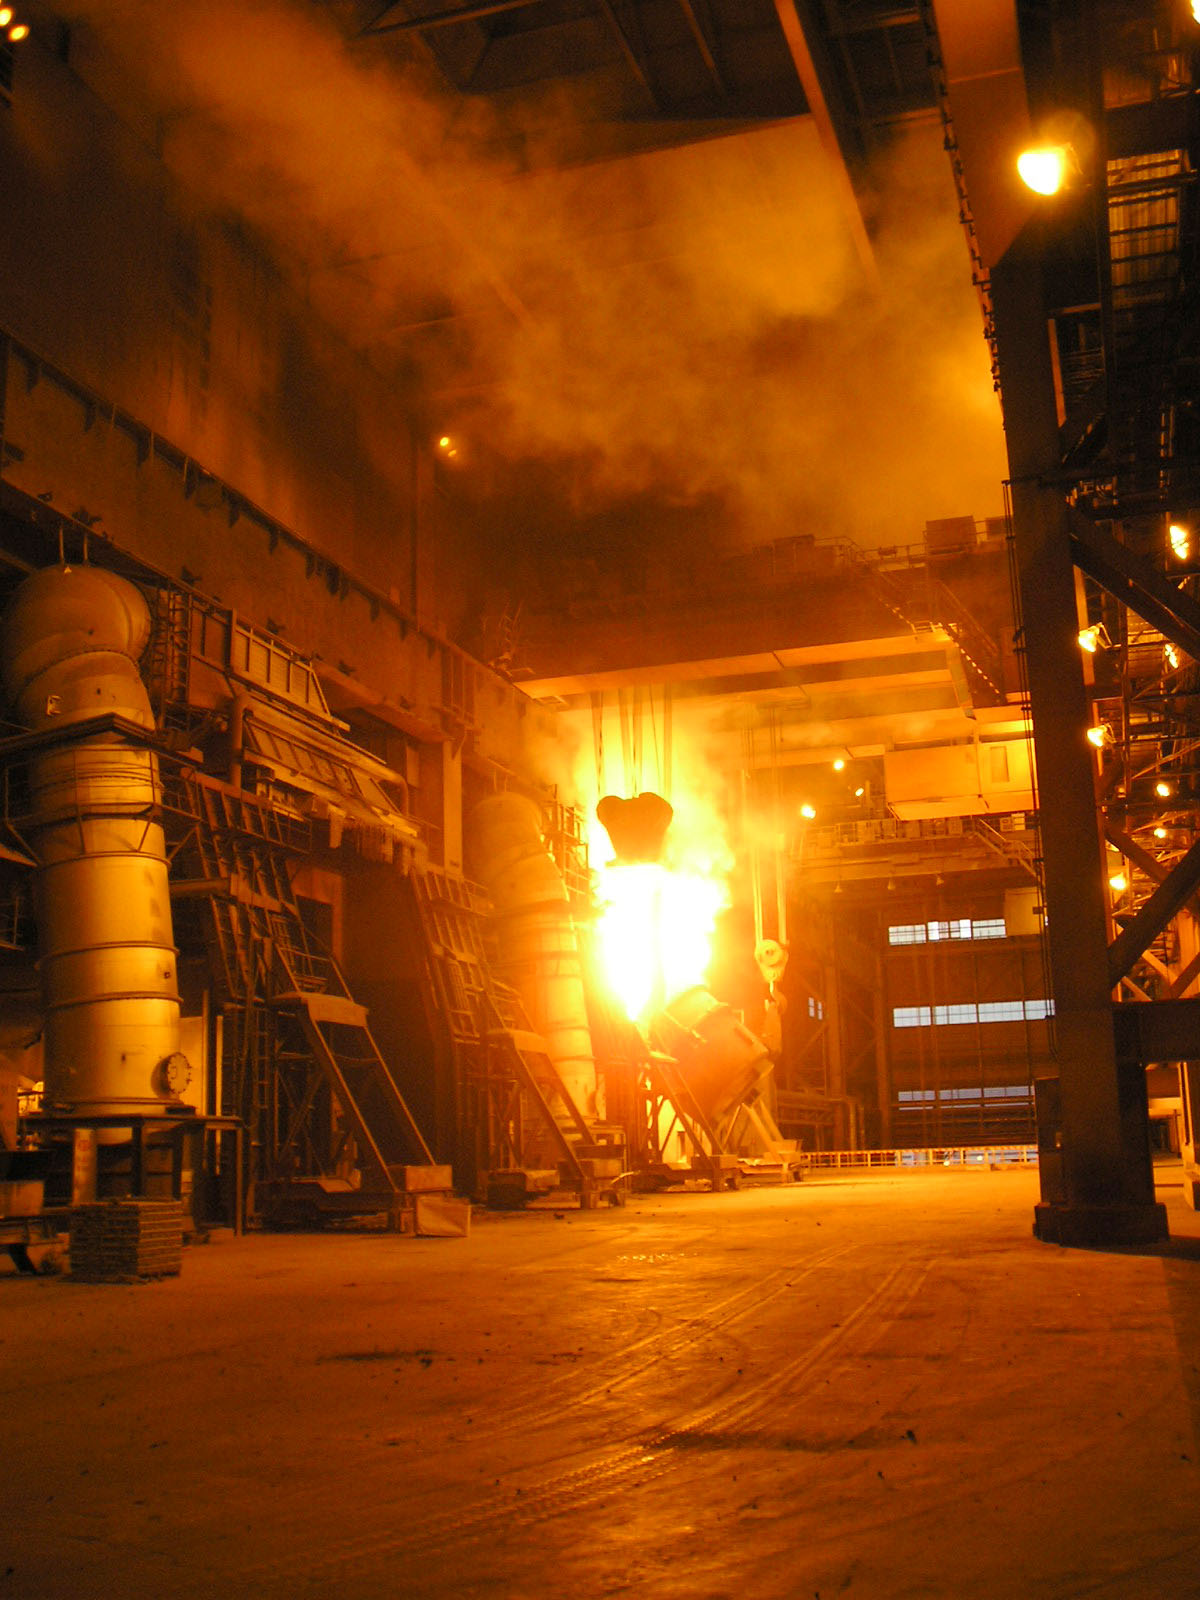 A blast furnace melts iron at Gwangyang Ironworks. Korea's steel exports are estimated to have decreased 4.3% from a year ago to 29.2 million tons this year.